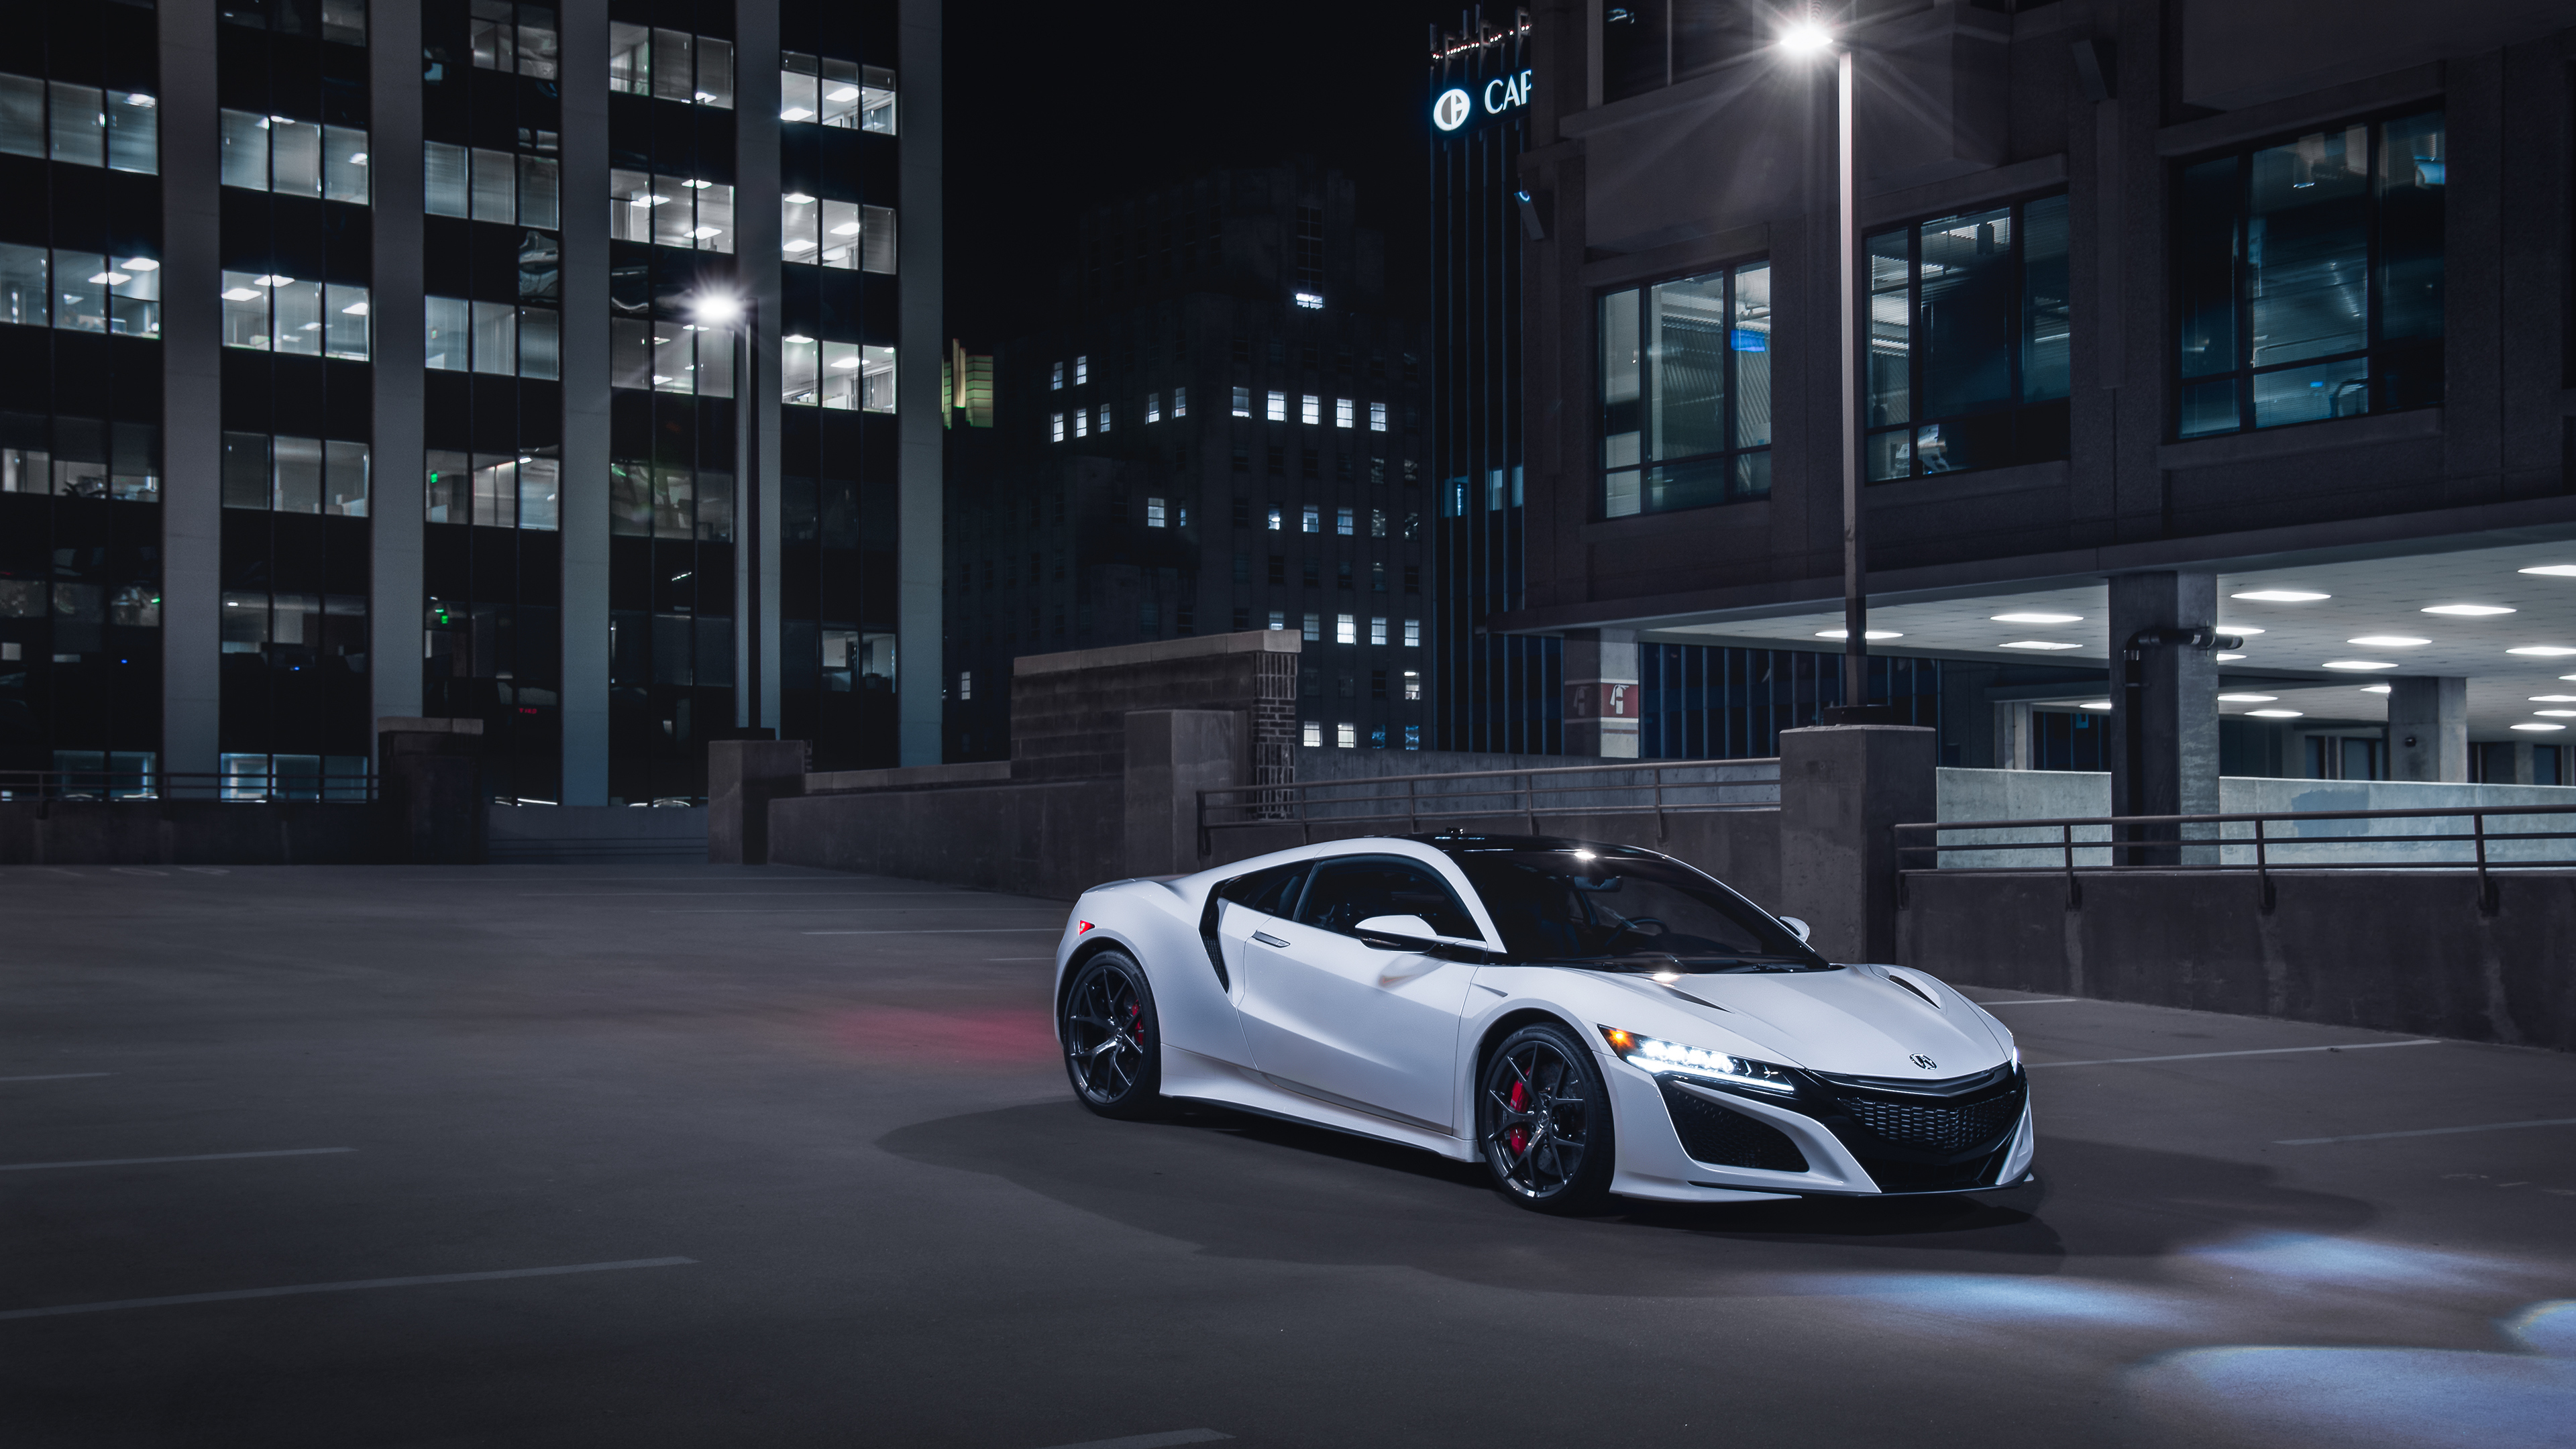 Wallpaper 4k Acura NSX 2019 Front View 4k 4k-wallpapers